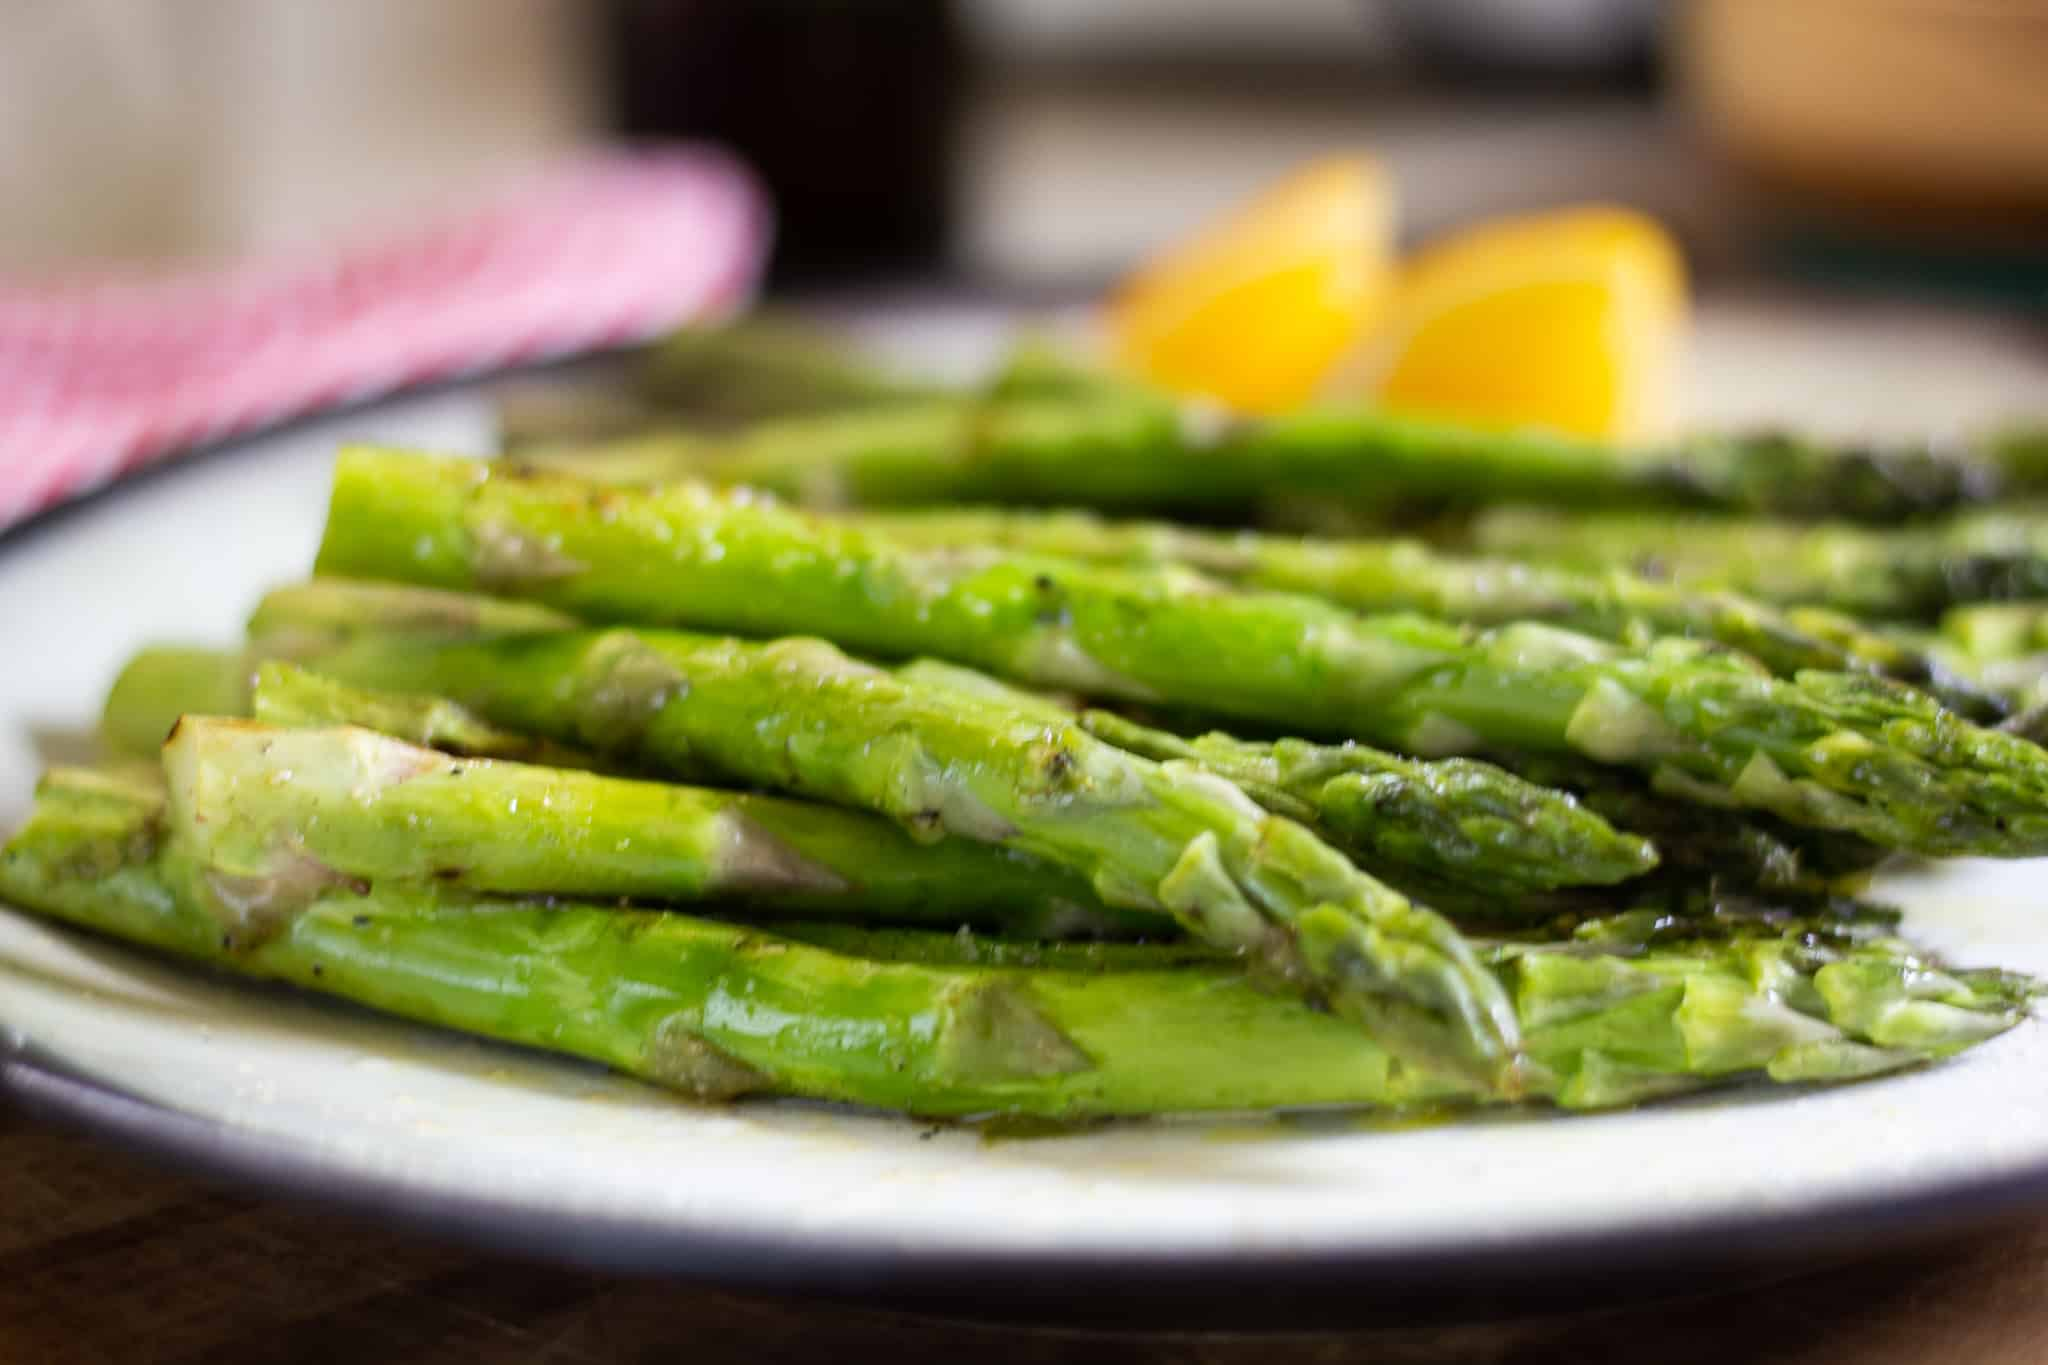 Grilled asparagus on plate with lemon